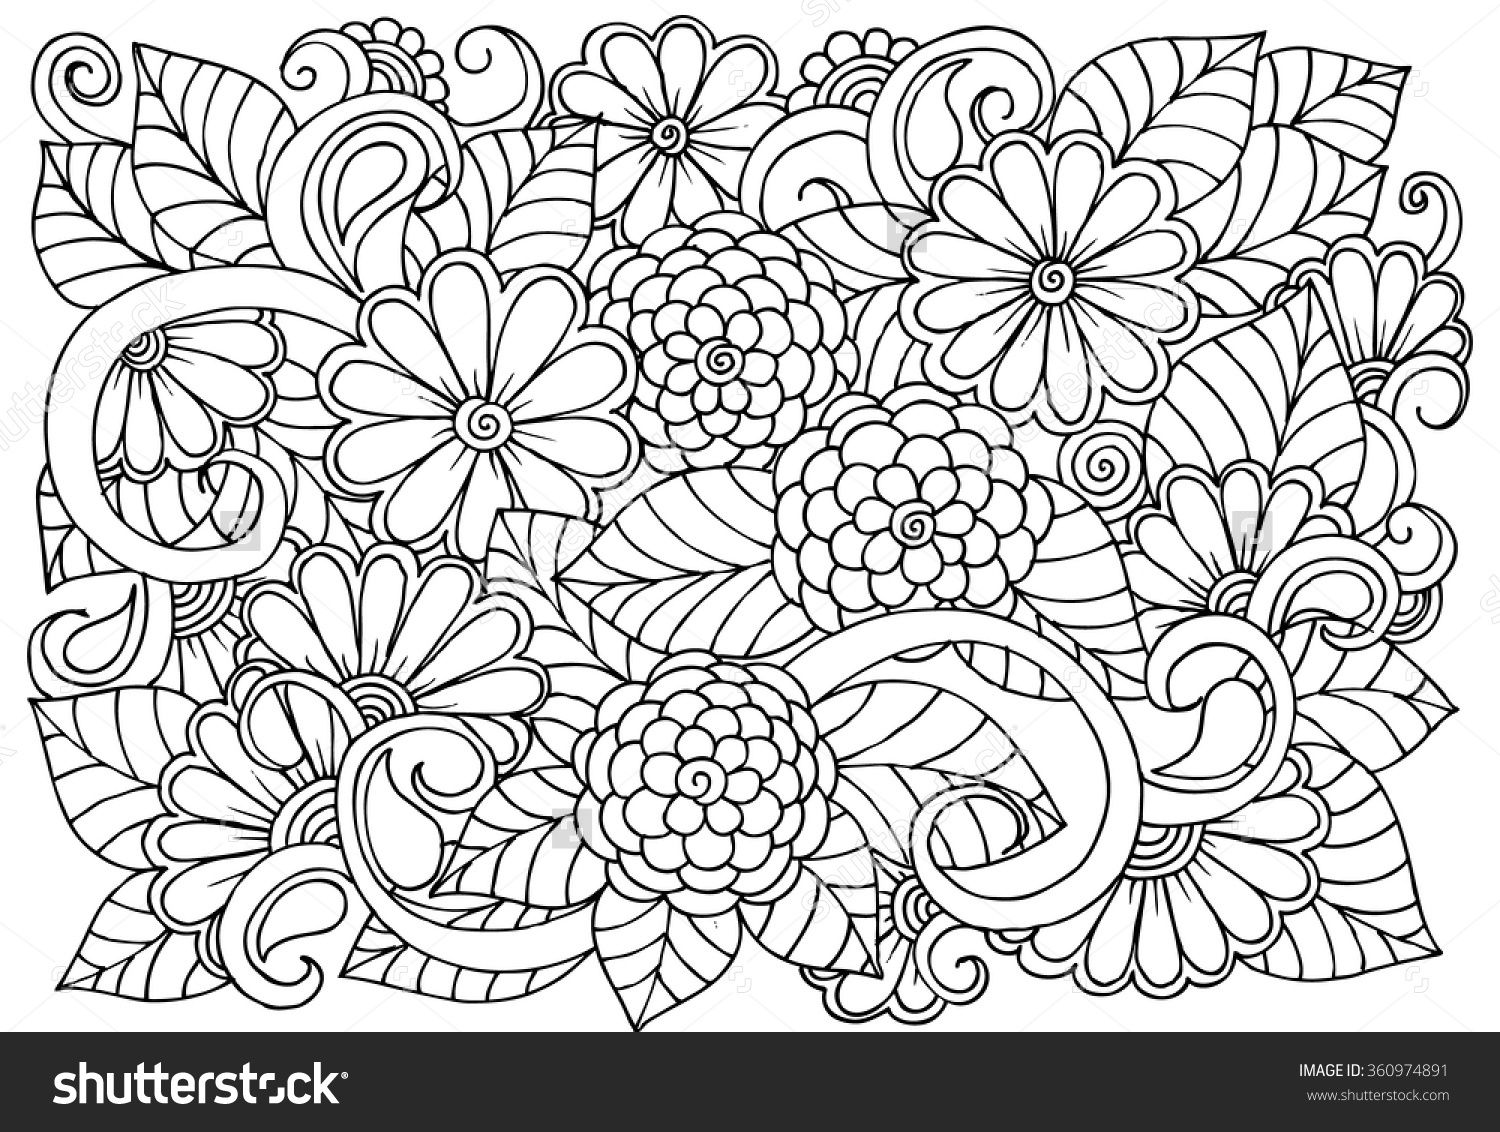 Doodle Floral Pattern In Black And White Page For Coloring Book Zendoodle Drawing